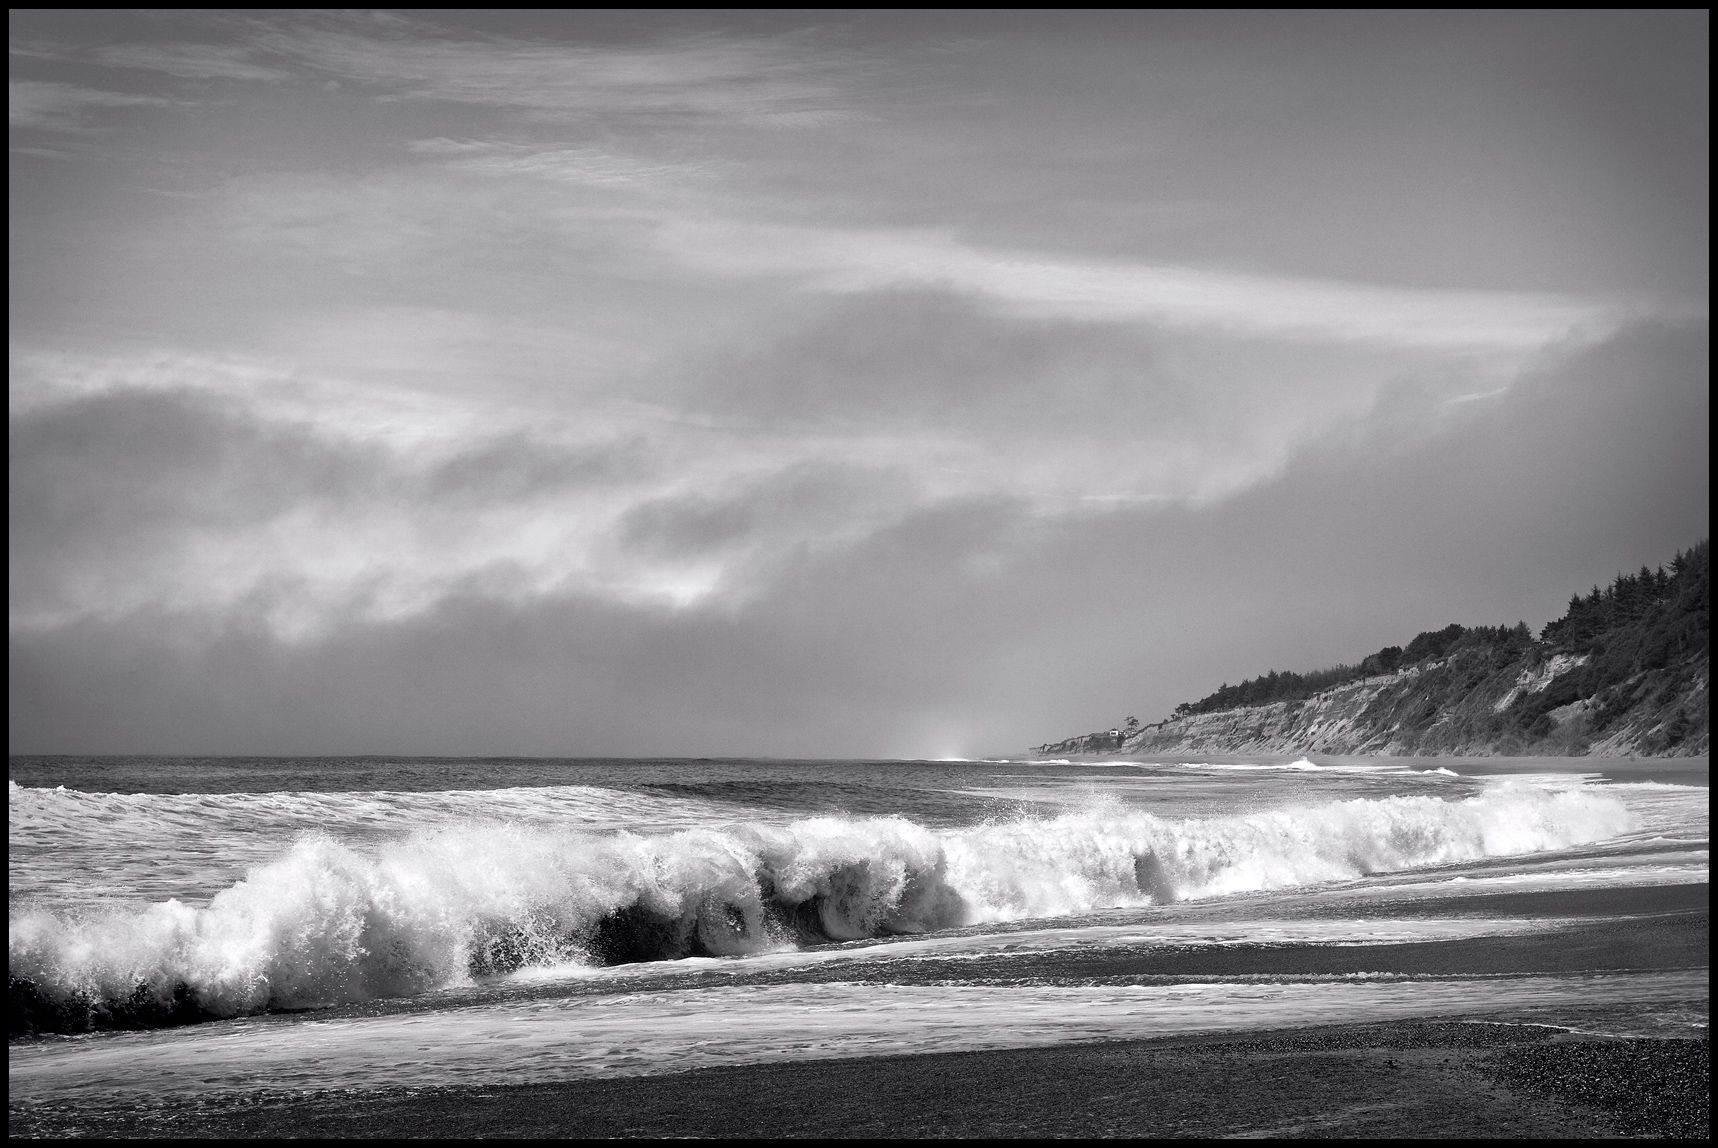 Surf - Gold Beach, CA